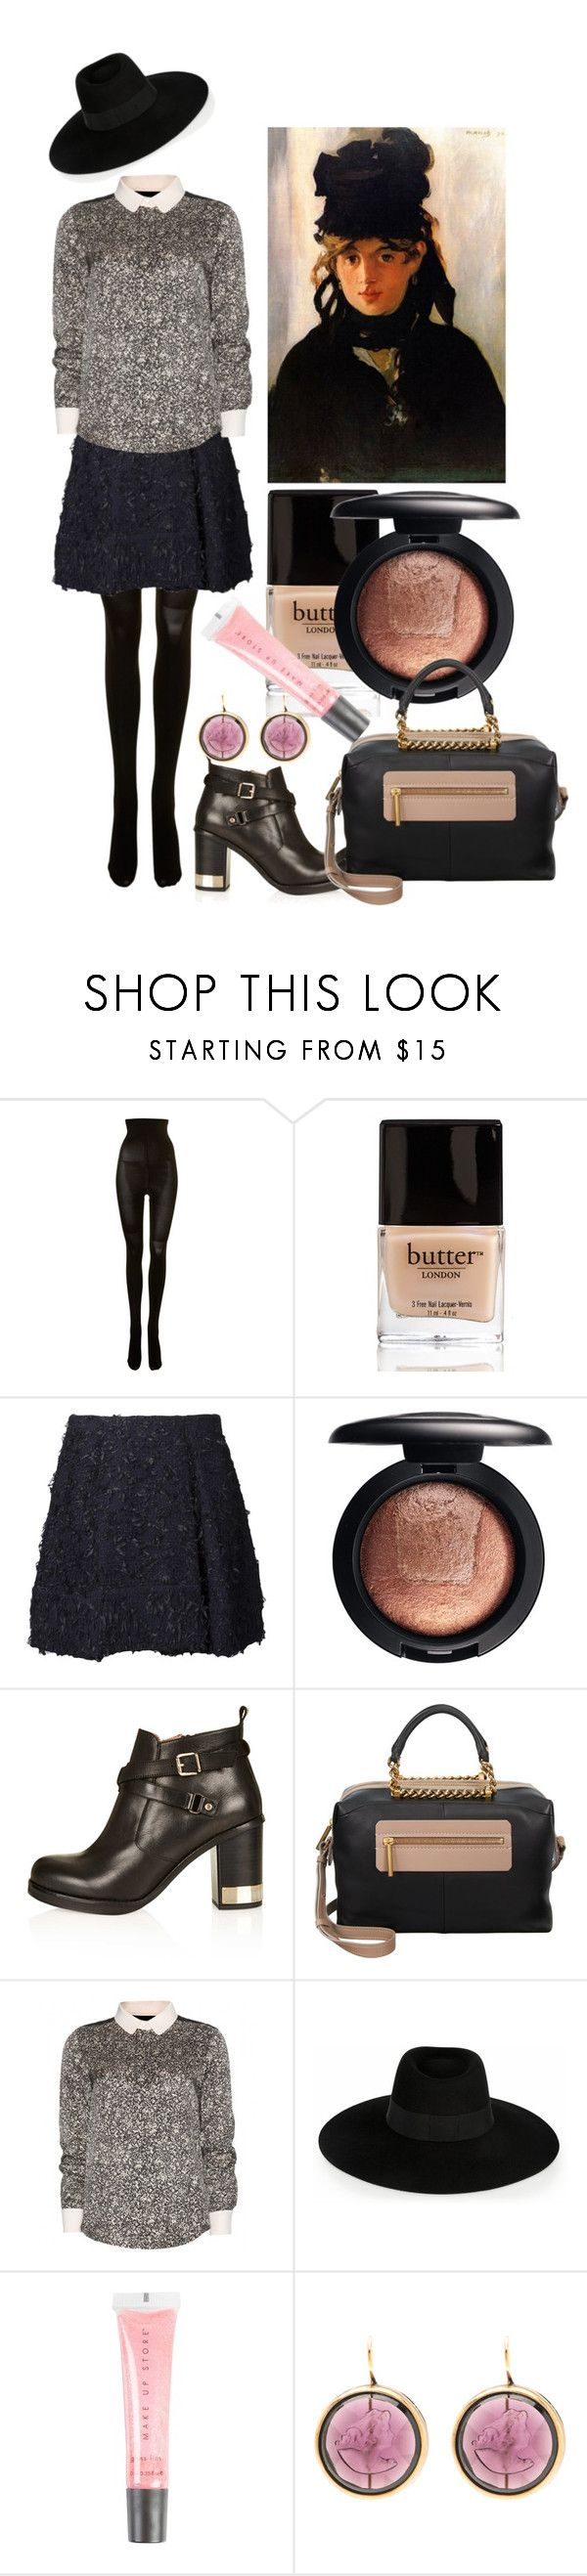 """""""The Black Hats"""" by historychick ❤ liked on Polyvore featuring SPANX, Butter London, 3.1 Phillip Lim, MAC Cosmetics, Topshop, Lanvin, Chloé, Maison Michel, MAKE UP STORE and Demeter Fragrance Library"""